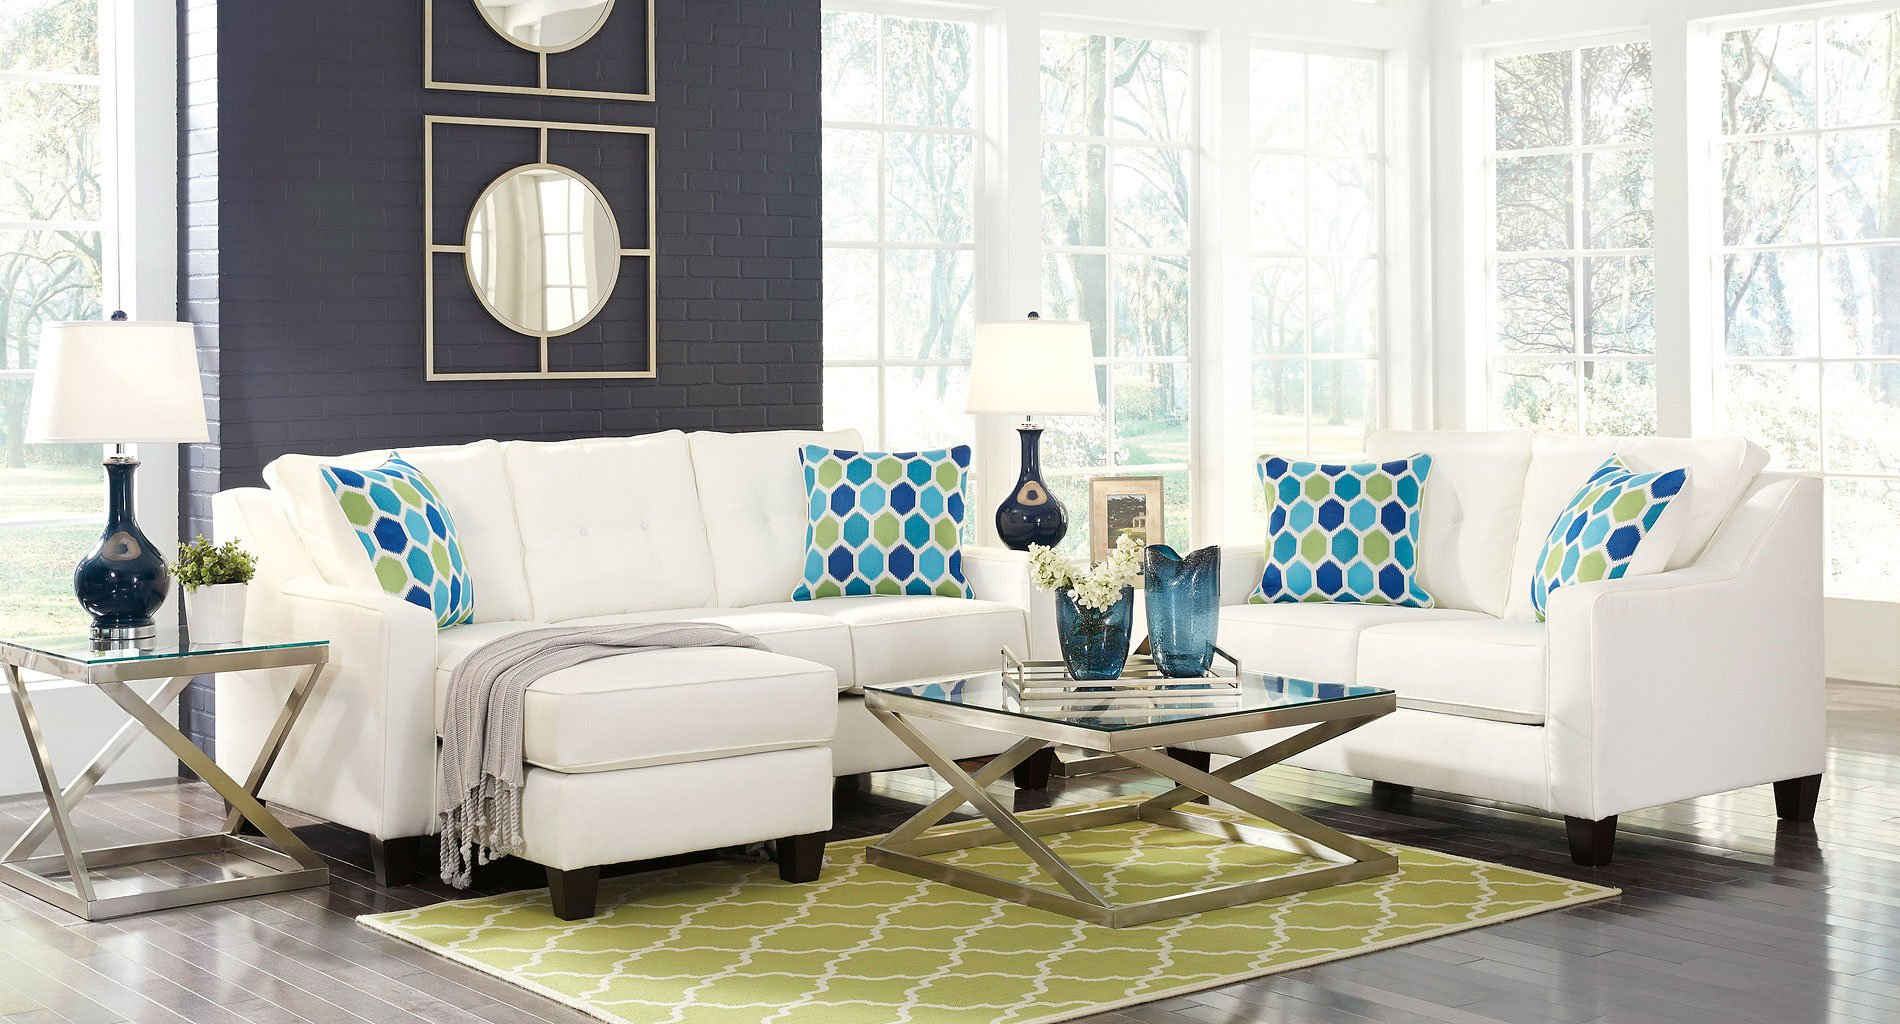 Aldie Nuvella White Living Room Set within All White Living Room Set